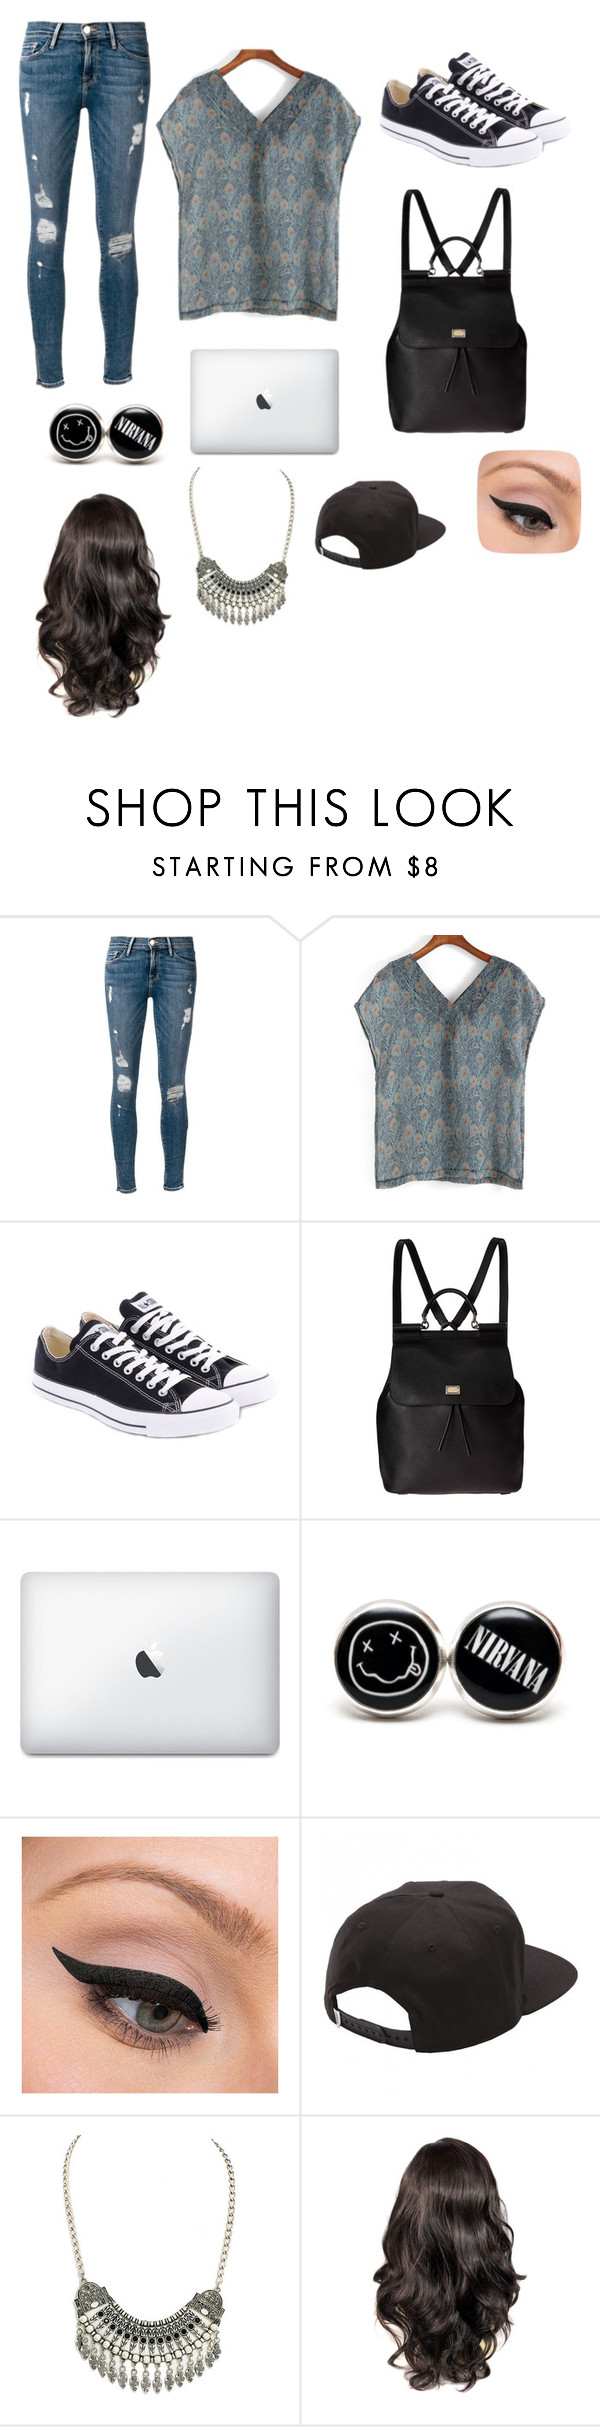 """Untitled #109"" by emmajean239 ❤ liked on Polyvore featuring Frame Denim, Converse, Dolce&Gabbana, LORAC, Vans and Gypsy Soul"